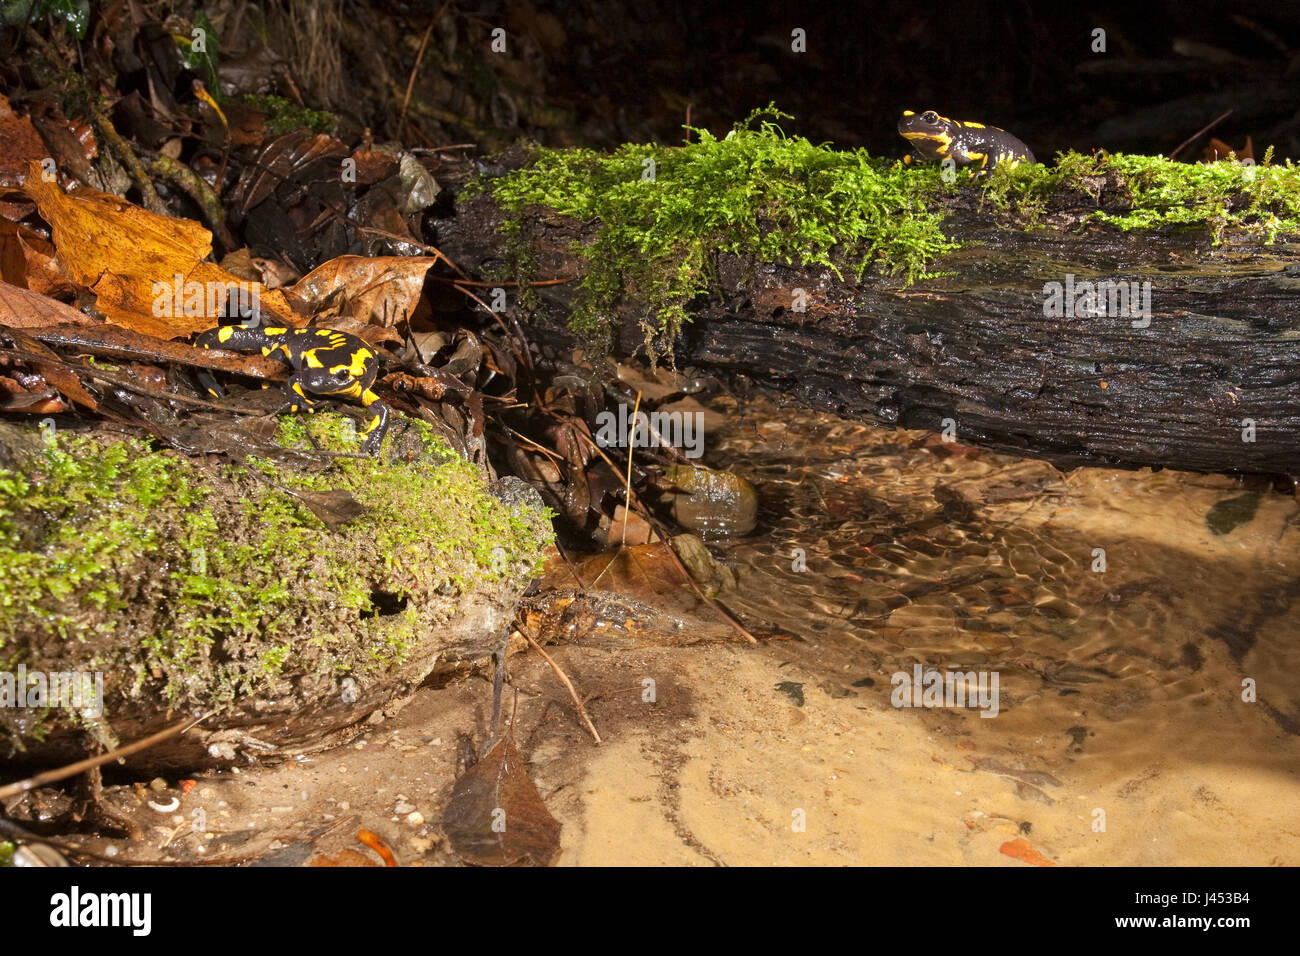 Overview of two firesalamanders in their environment along a stream - Stock Image